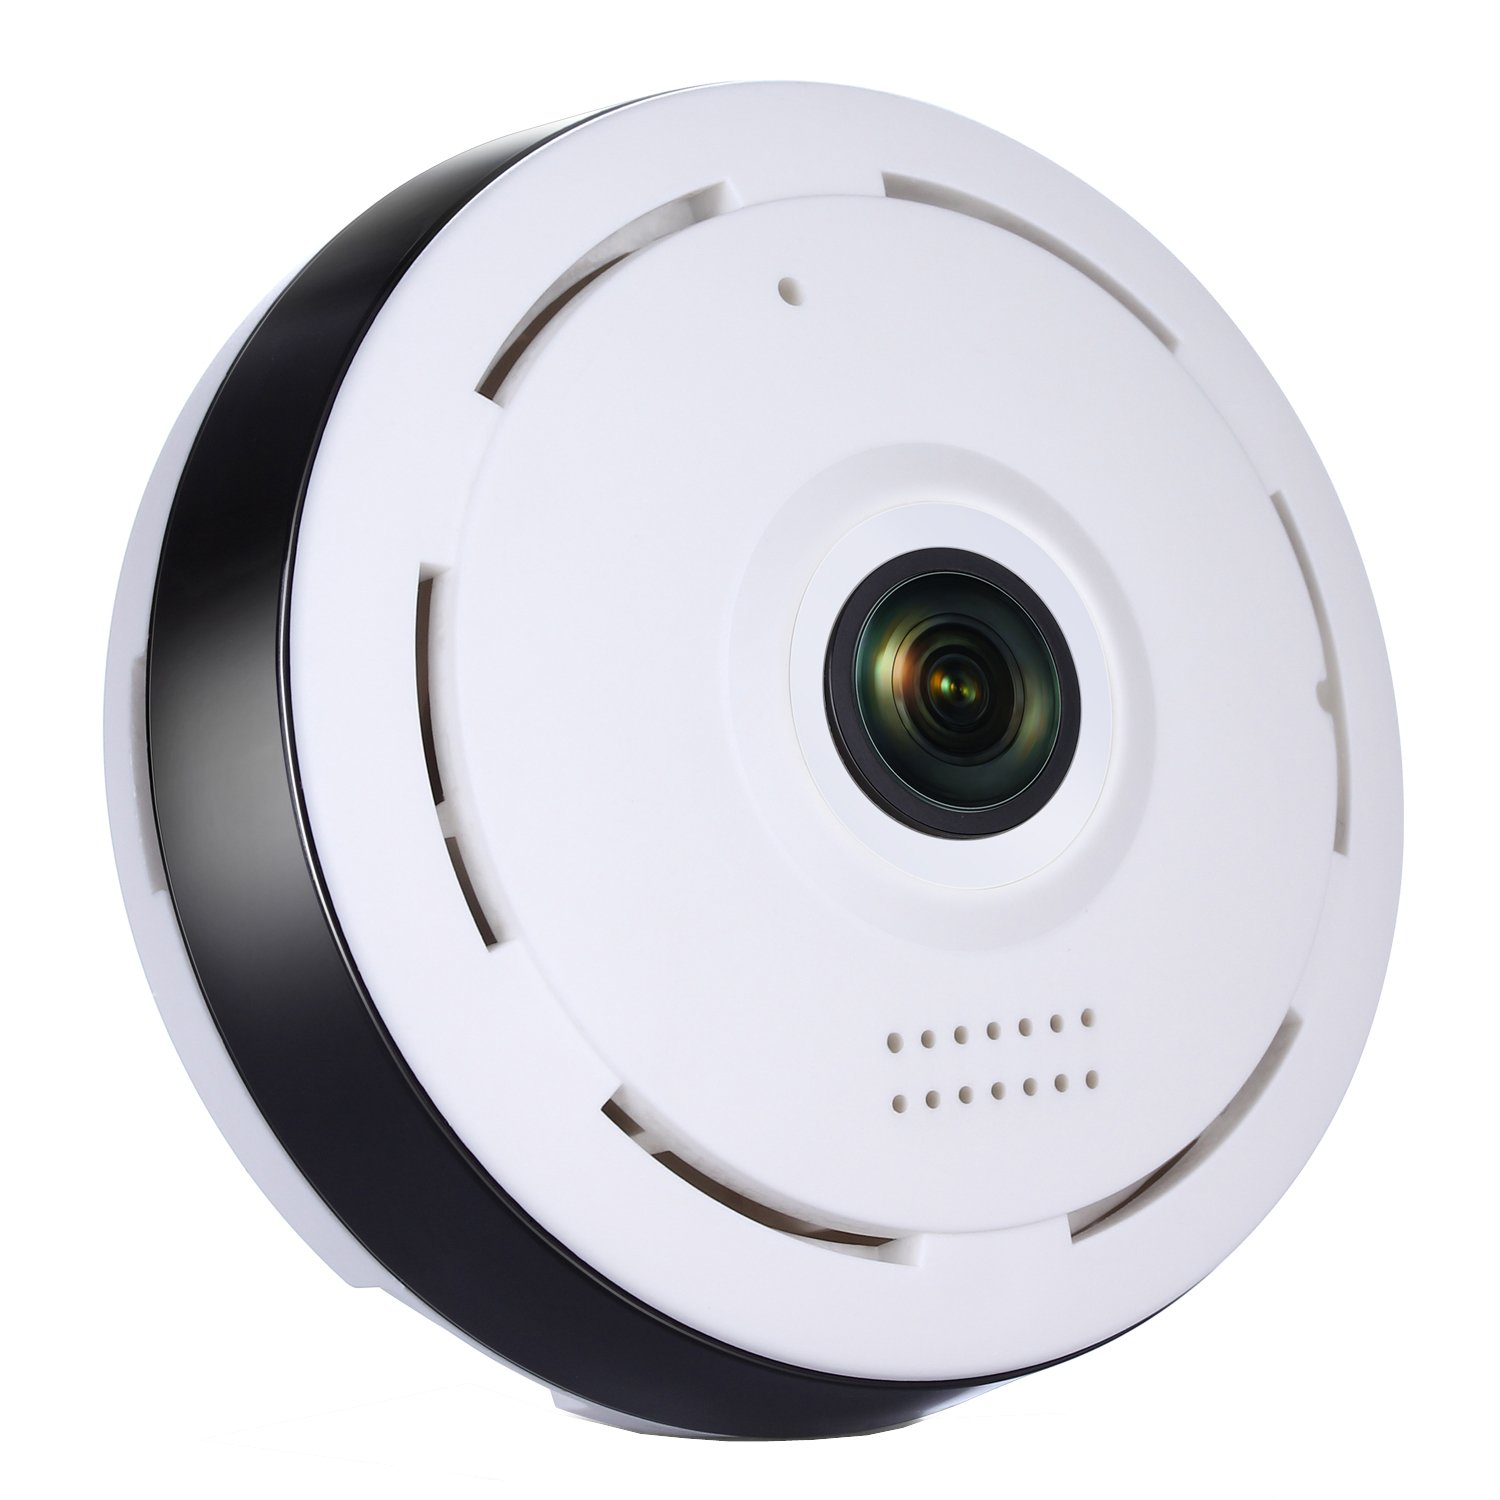 Veoker IP Camera Wireless Wifi 360 Degree Panoramic 2.0 Megapixel 1080P 2.4GHZ Security Camera Super Wide Angle Support IR Night Motion Detection Keep Your Pet & Home Safe by Veoker